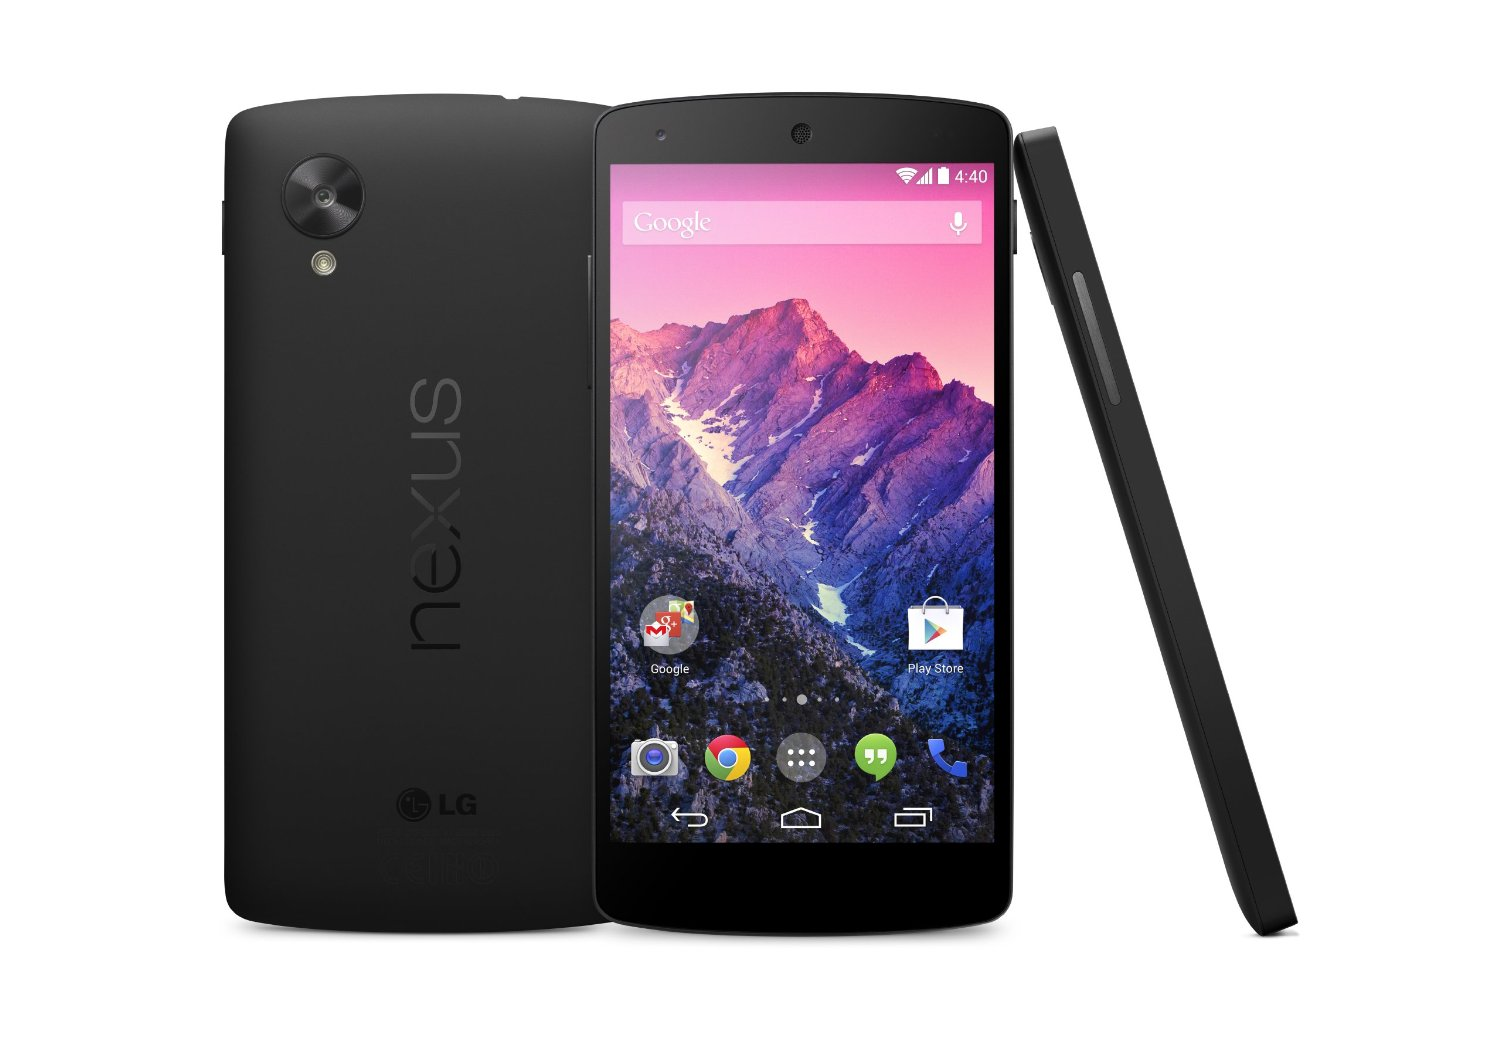 LG Nexus 5 4G LTE 16GB 8MP Camera Android Phone FULL HD ...